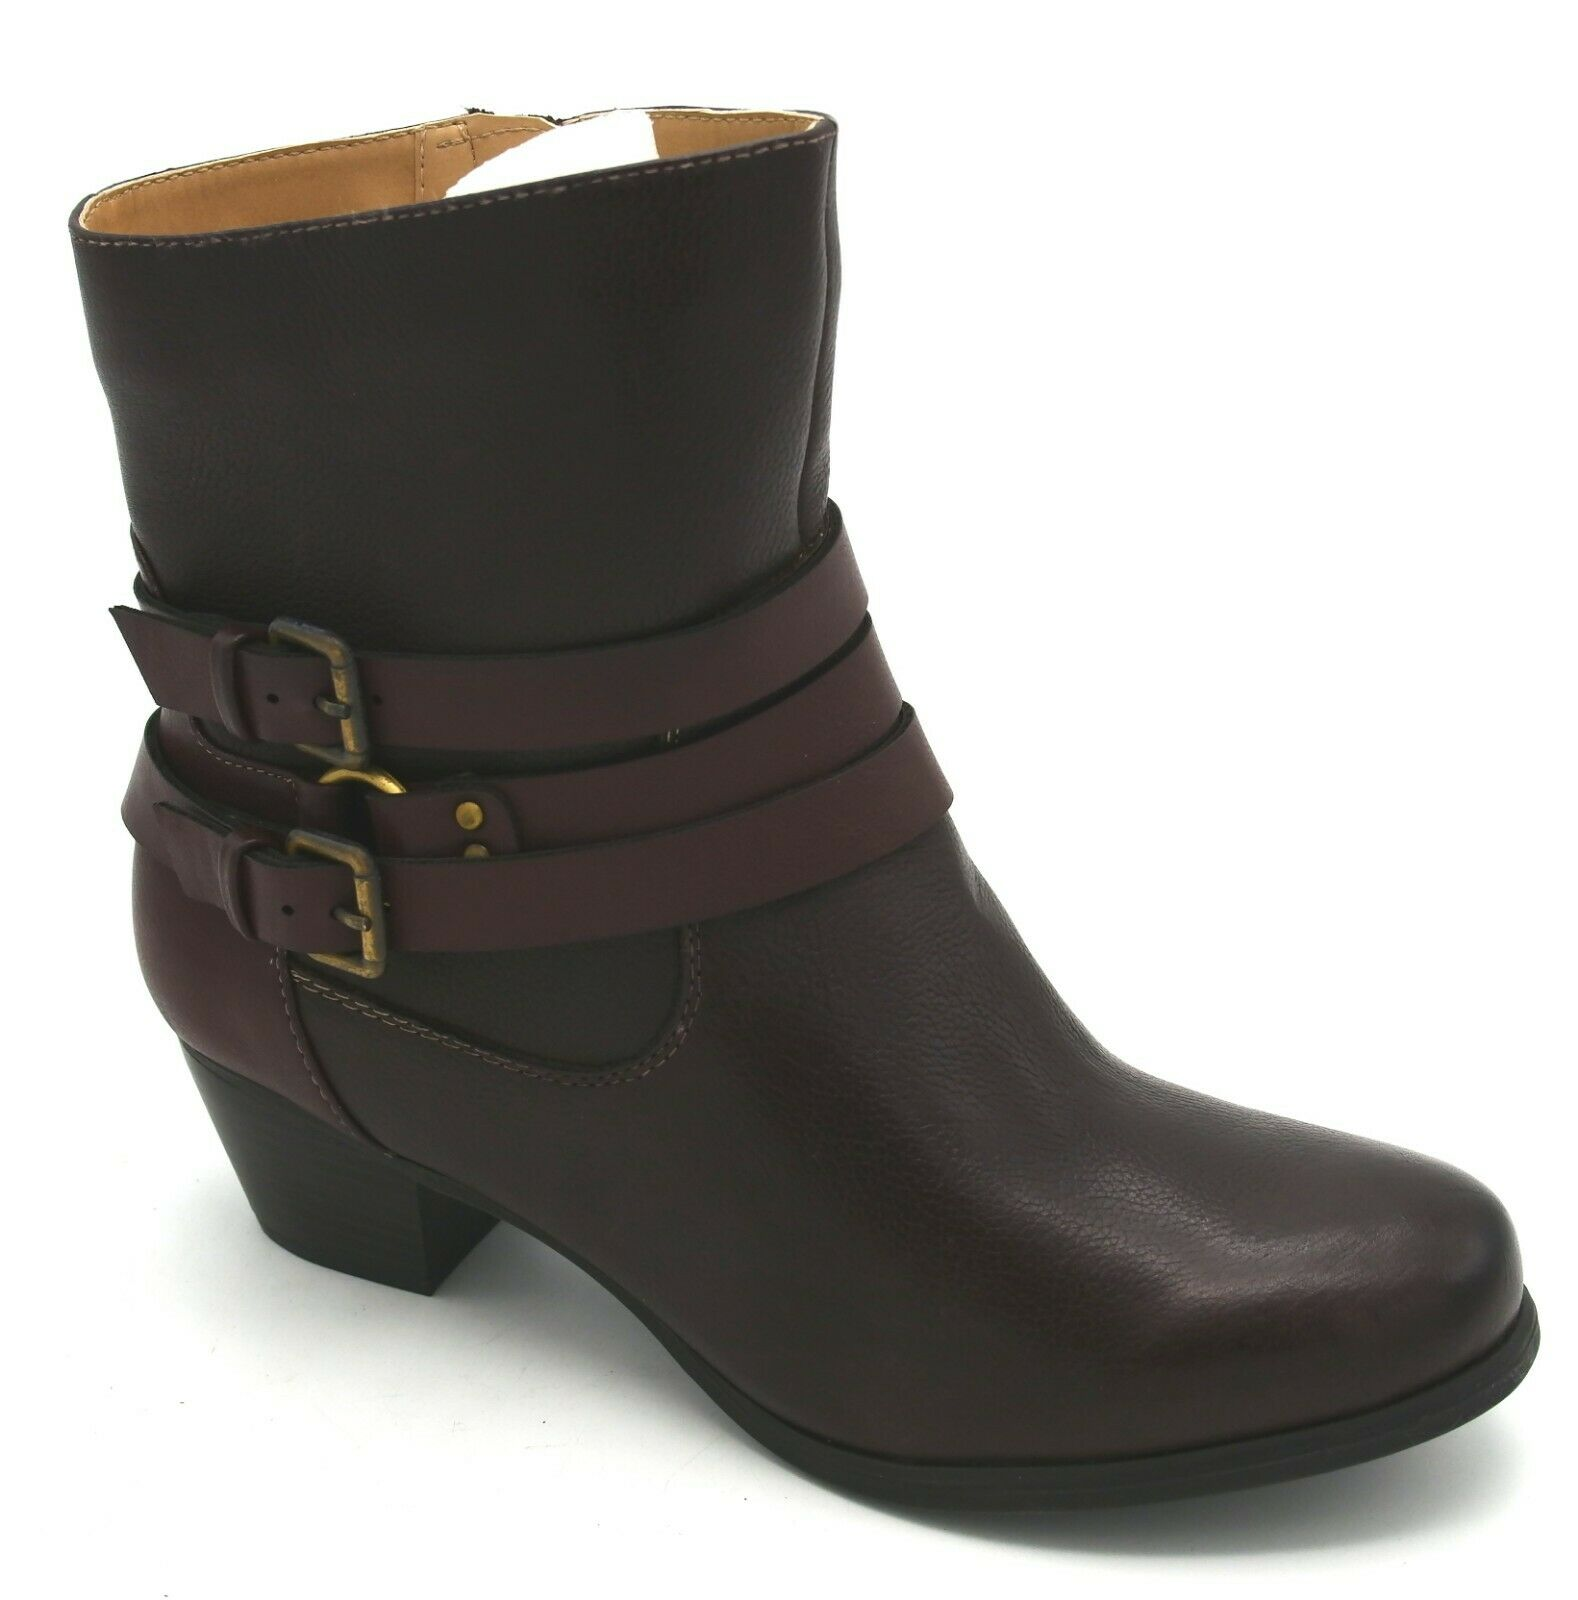 J7967 New Women's Naturalizer Katrina Brown Ankle Bootie 7.5 M